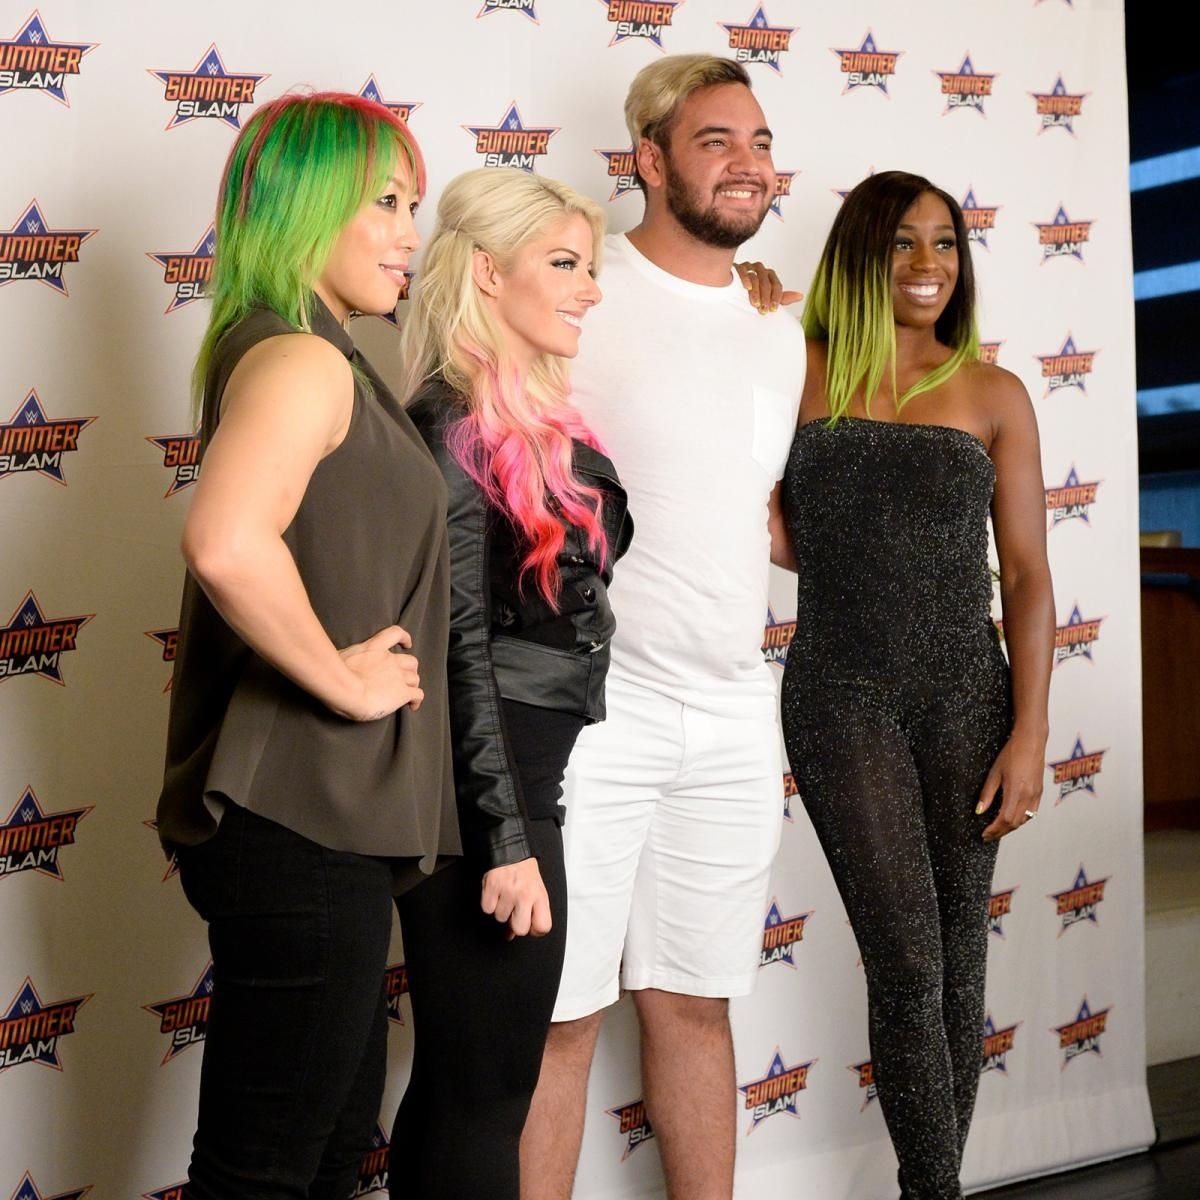 Alexa bliss naomi asuka and shinsuke nakamura take part in the the biggest event of the summer roars on as alexa bliss naomi asuka and shinsuke nakamura meet the wwe universe at brooklyn ns barclays center for a kristyandbryce Image collections